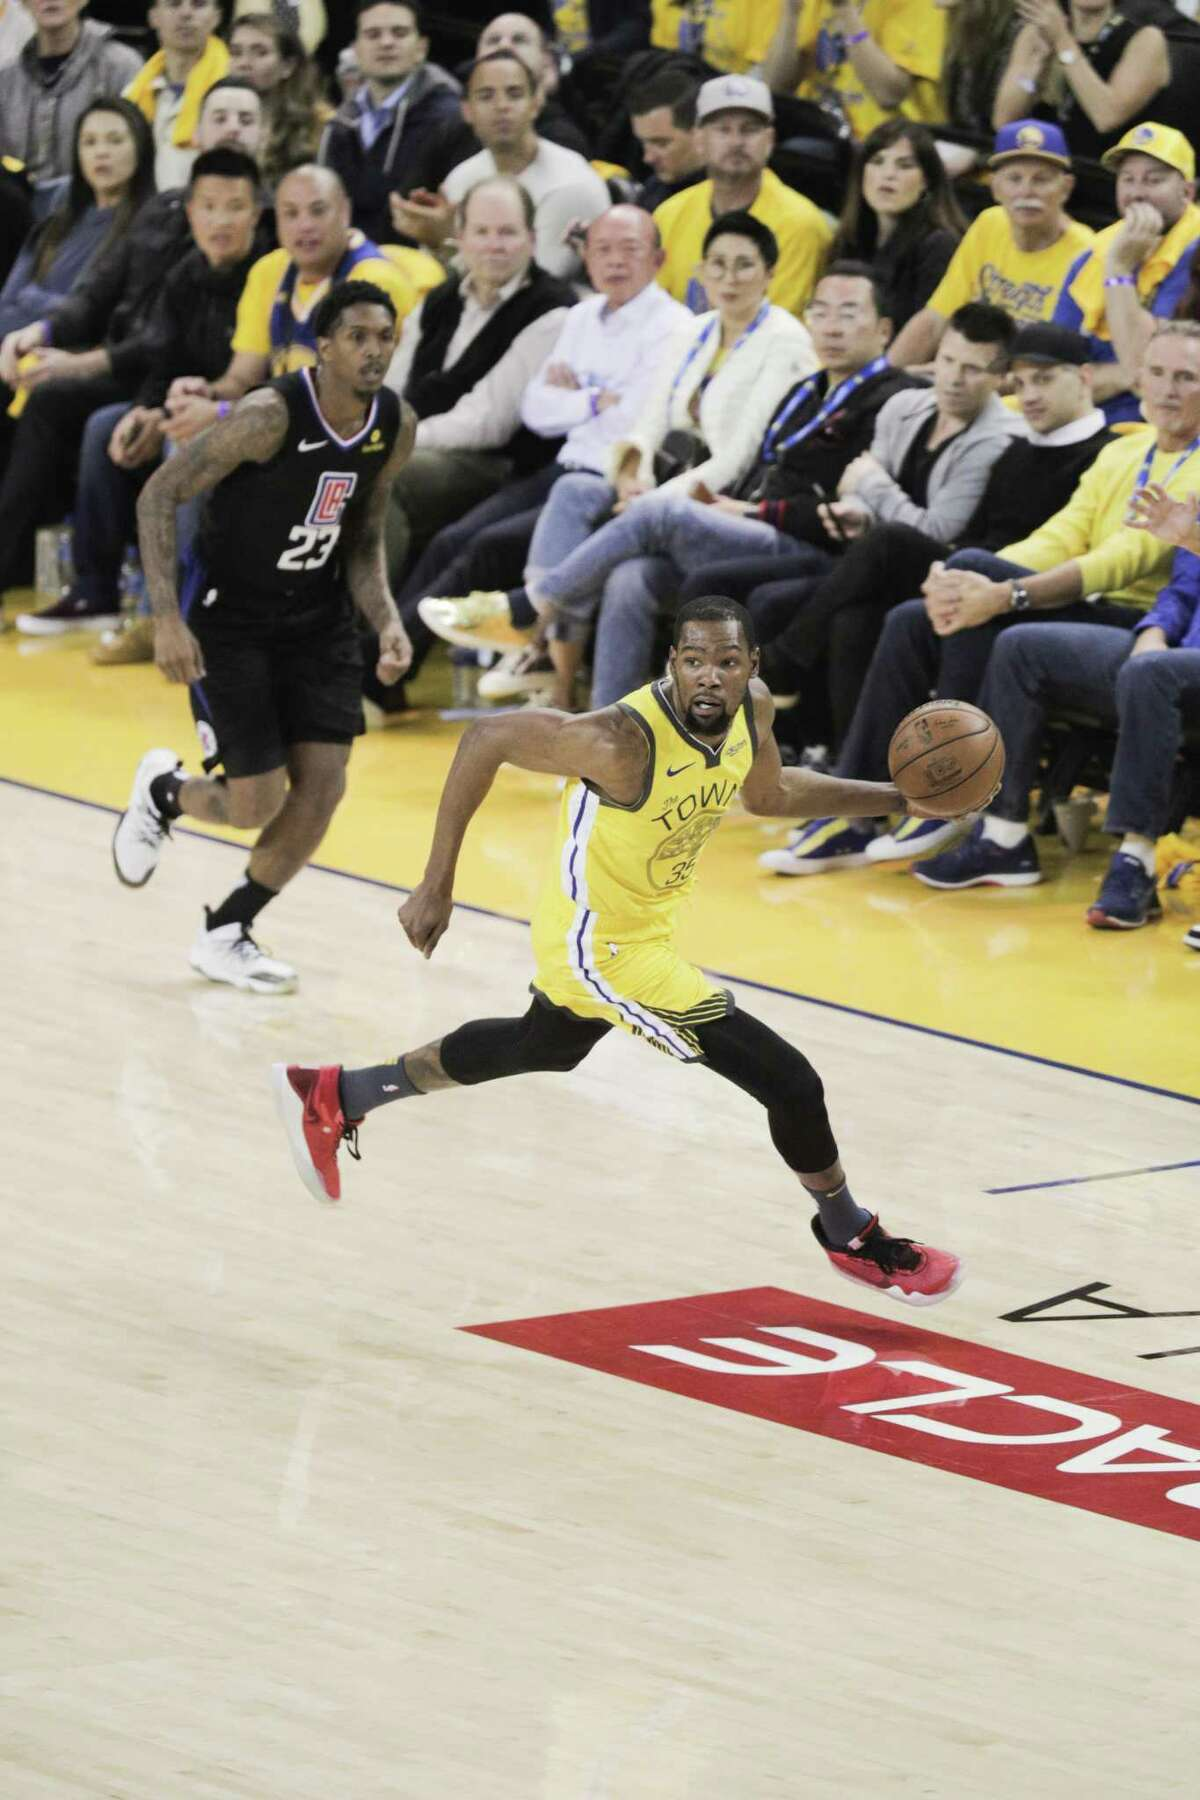 Golden State Warriors' Kevin Durant runs the ball up court in the first quarter during game 2 of the first round playoffs against the Clippers.